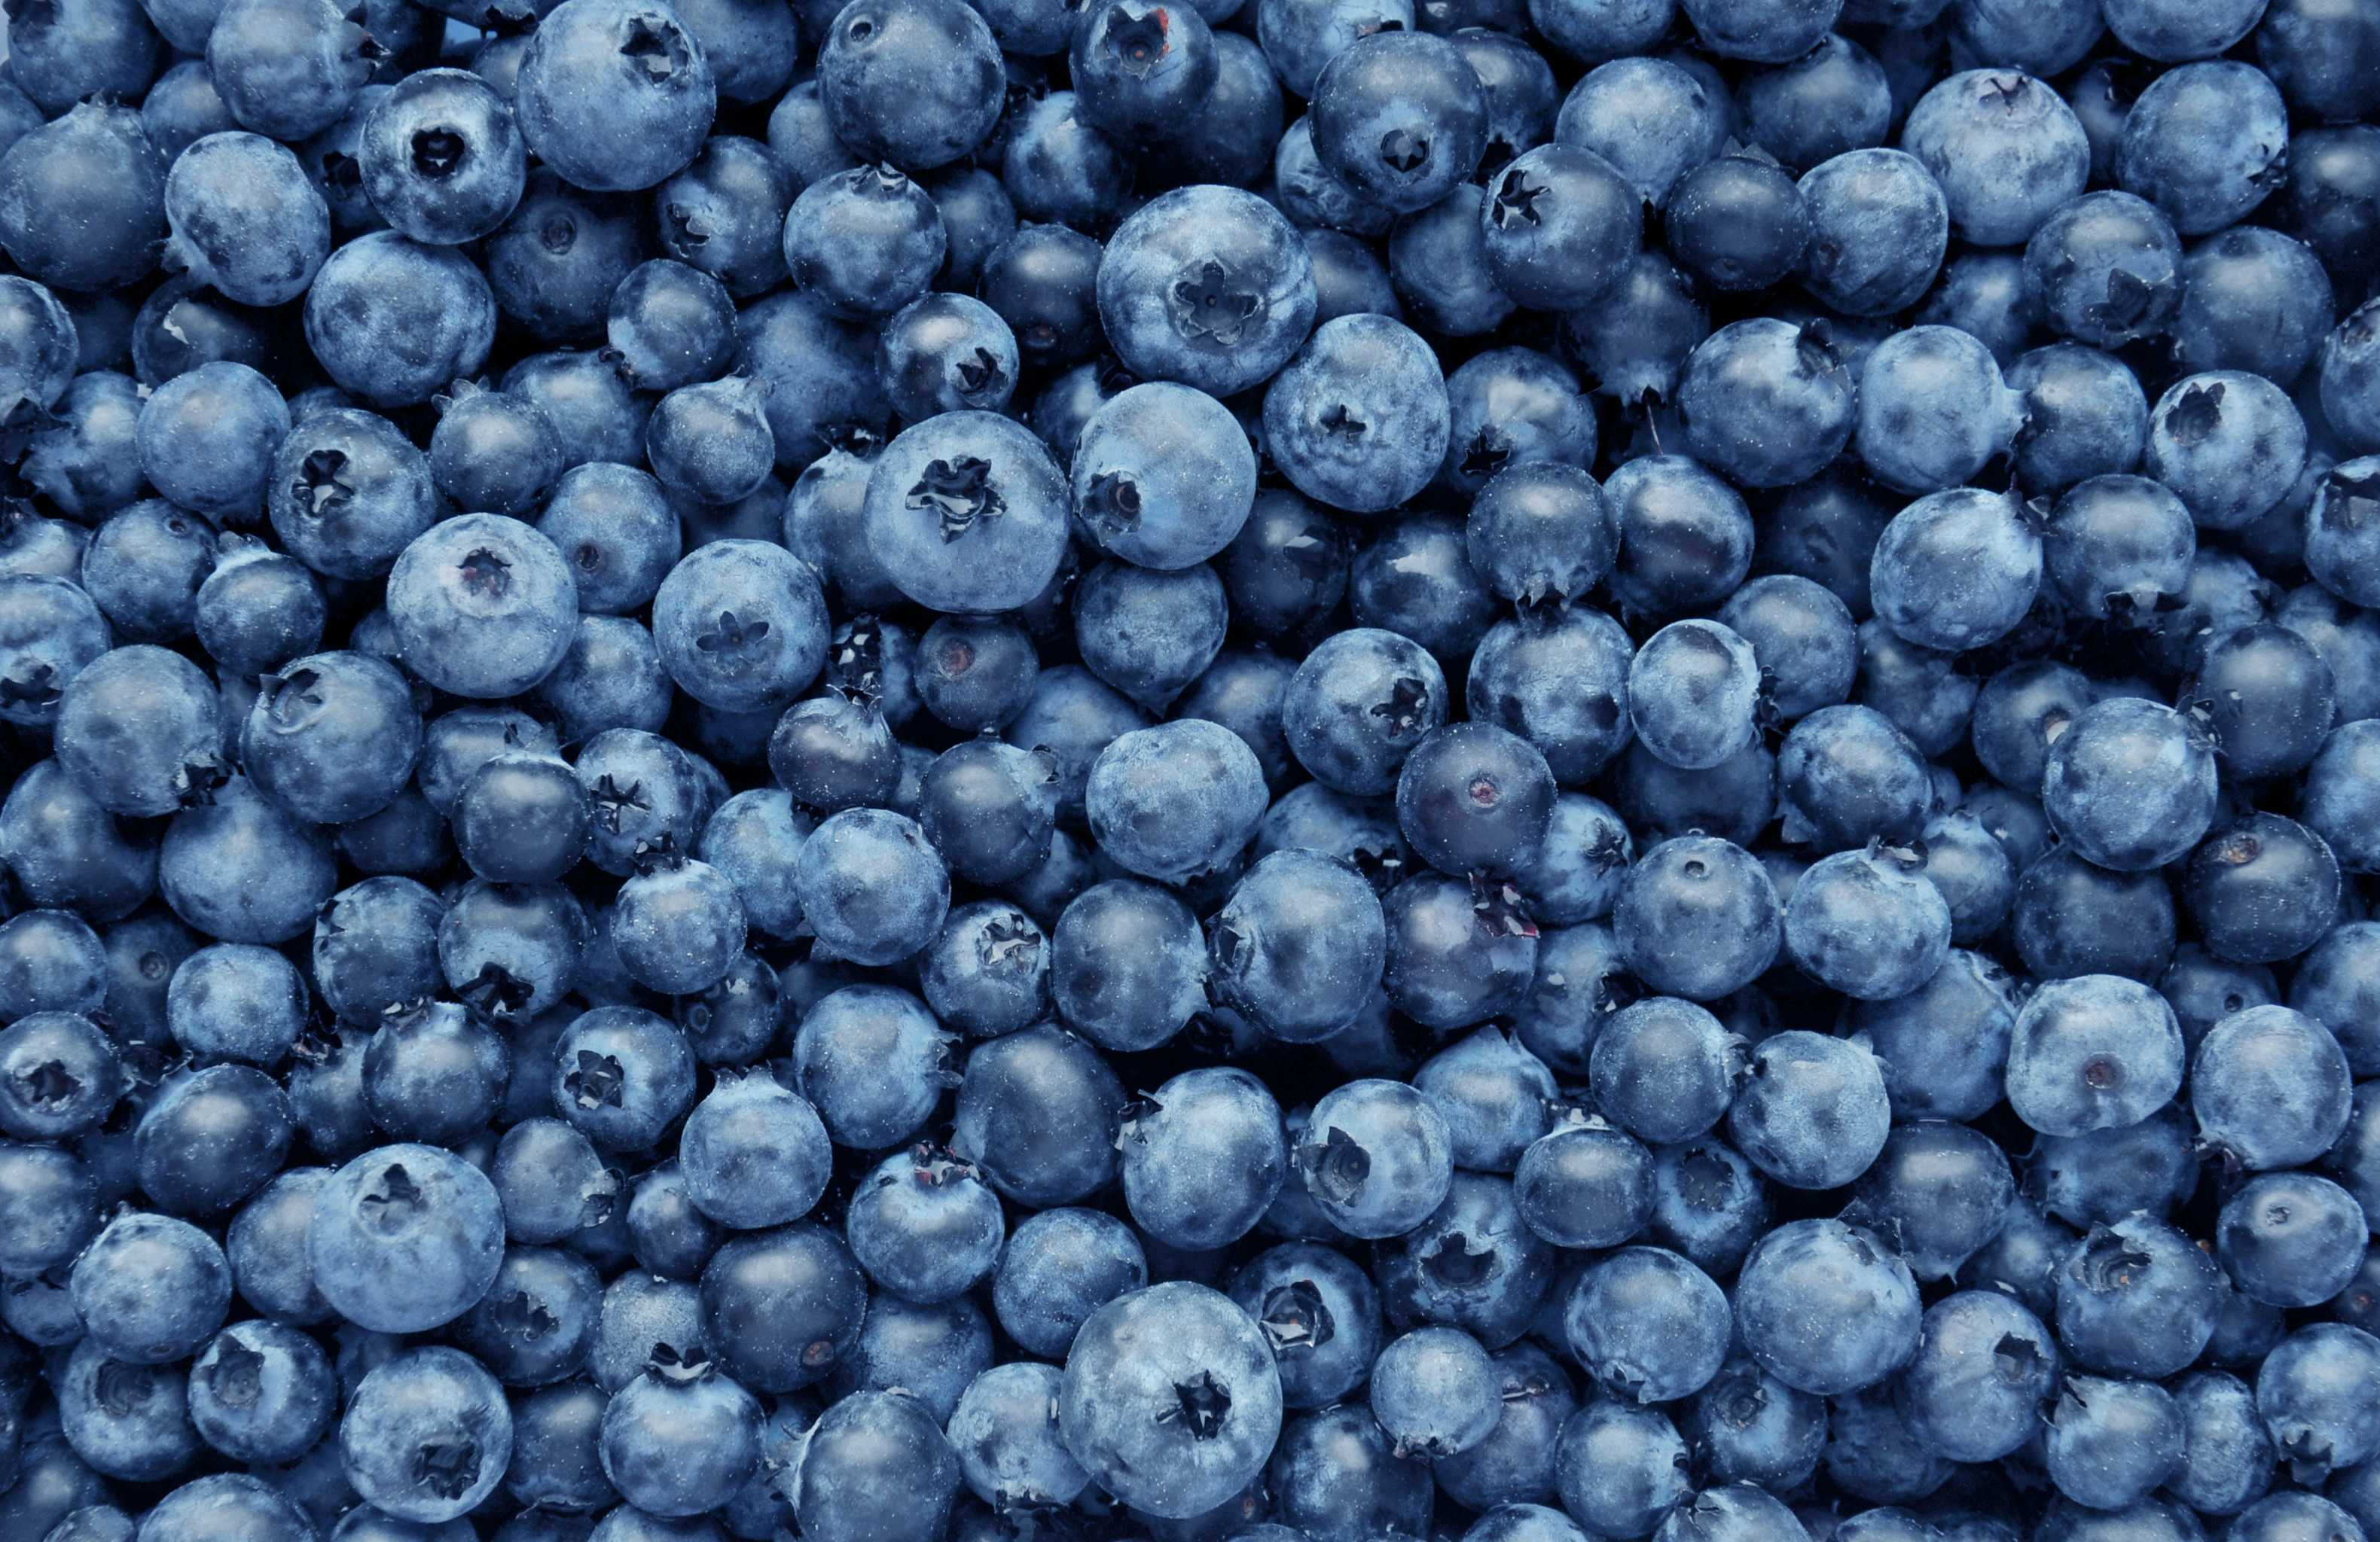 Blueberry Smoothie (Serves 1)